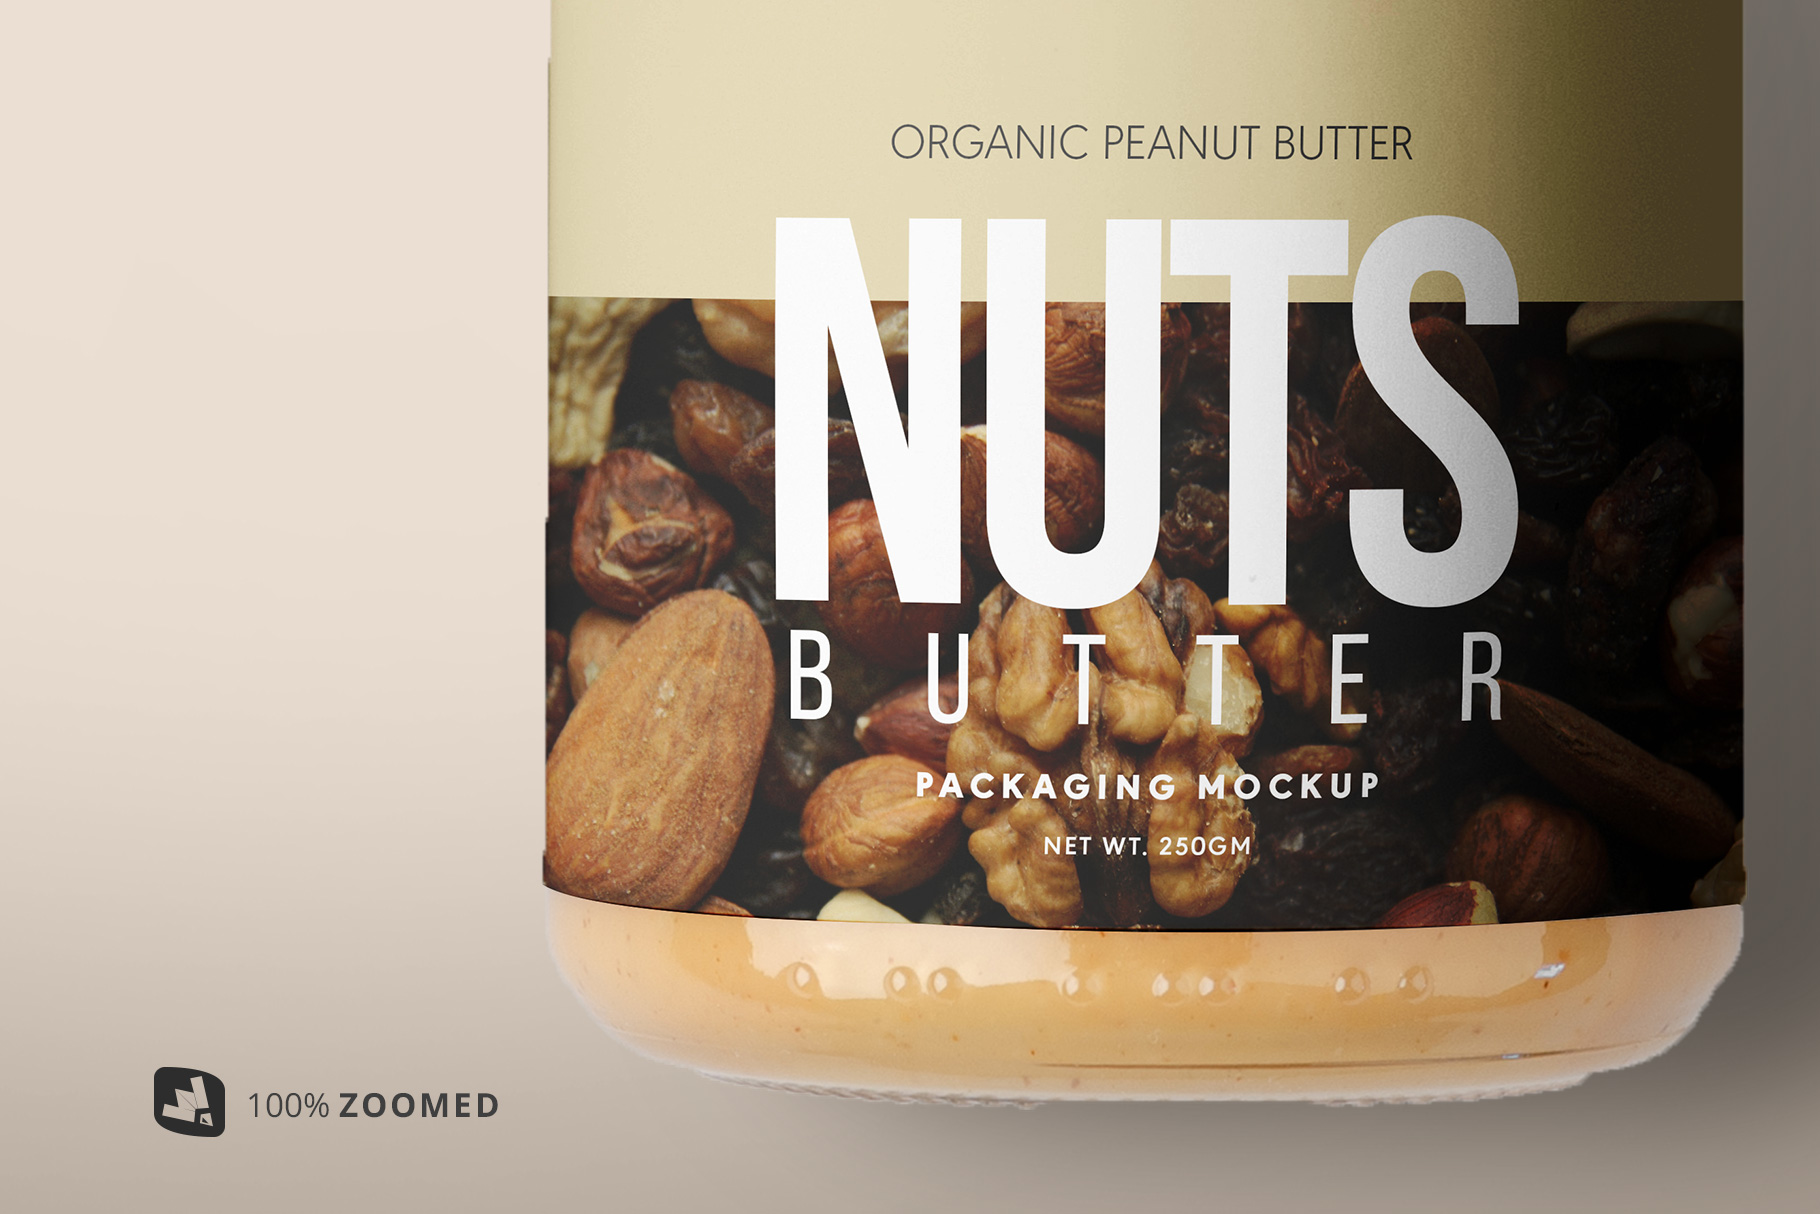 zoomed in image of the organic nut butter packaging mockup